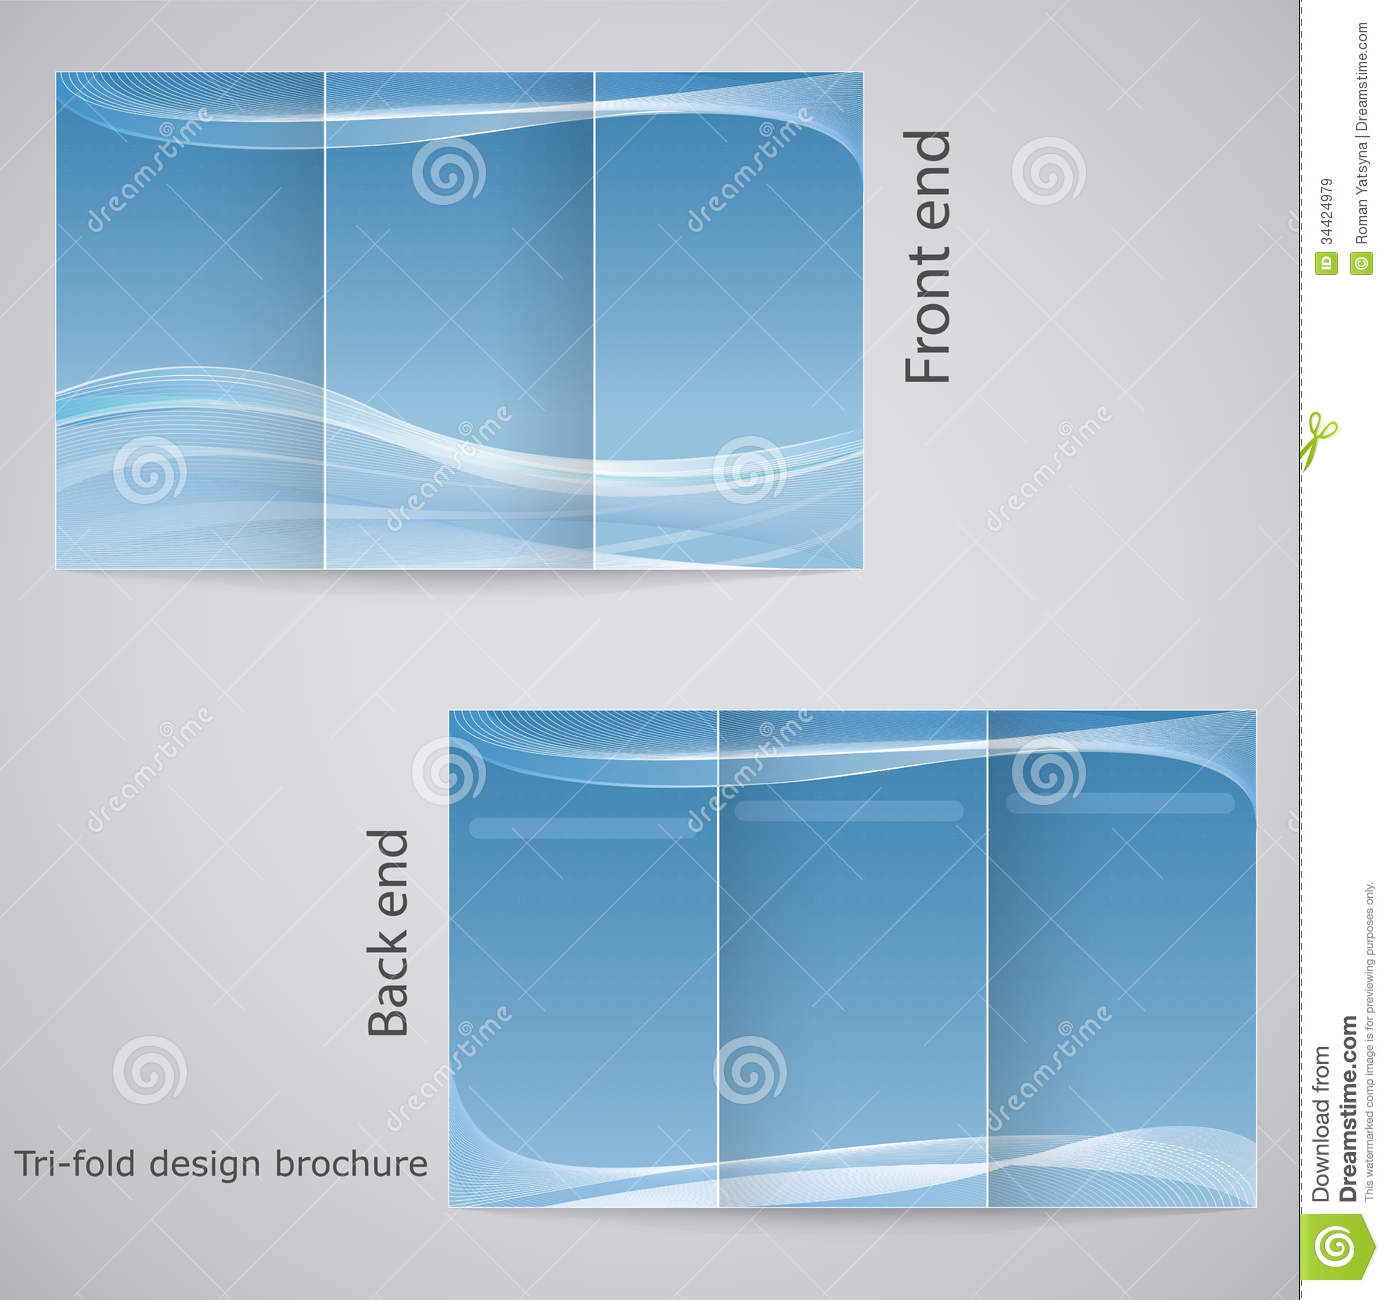 17 tri fold brochure design templates images tri fold for Trifold brochure template